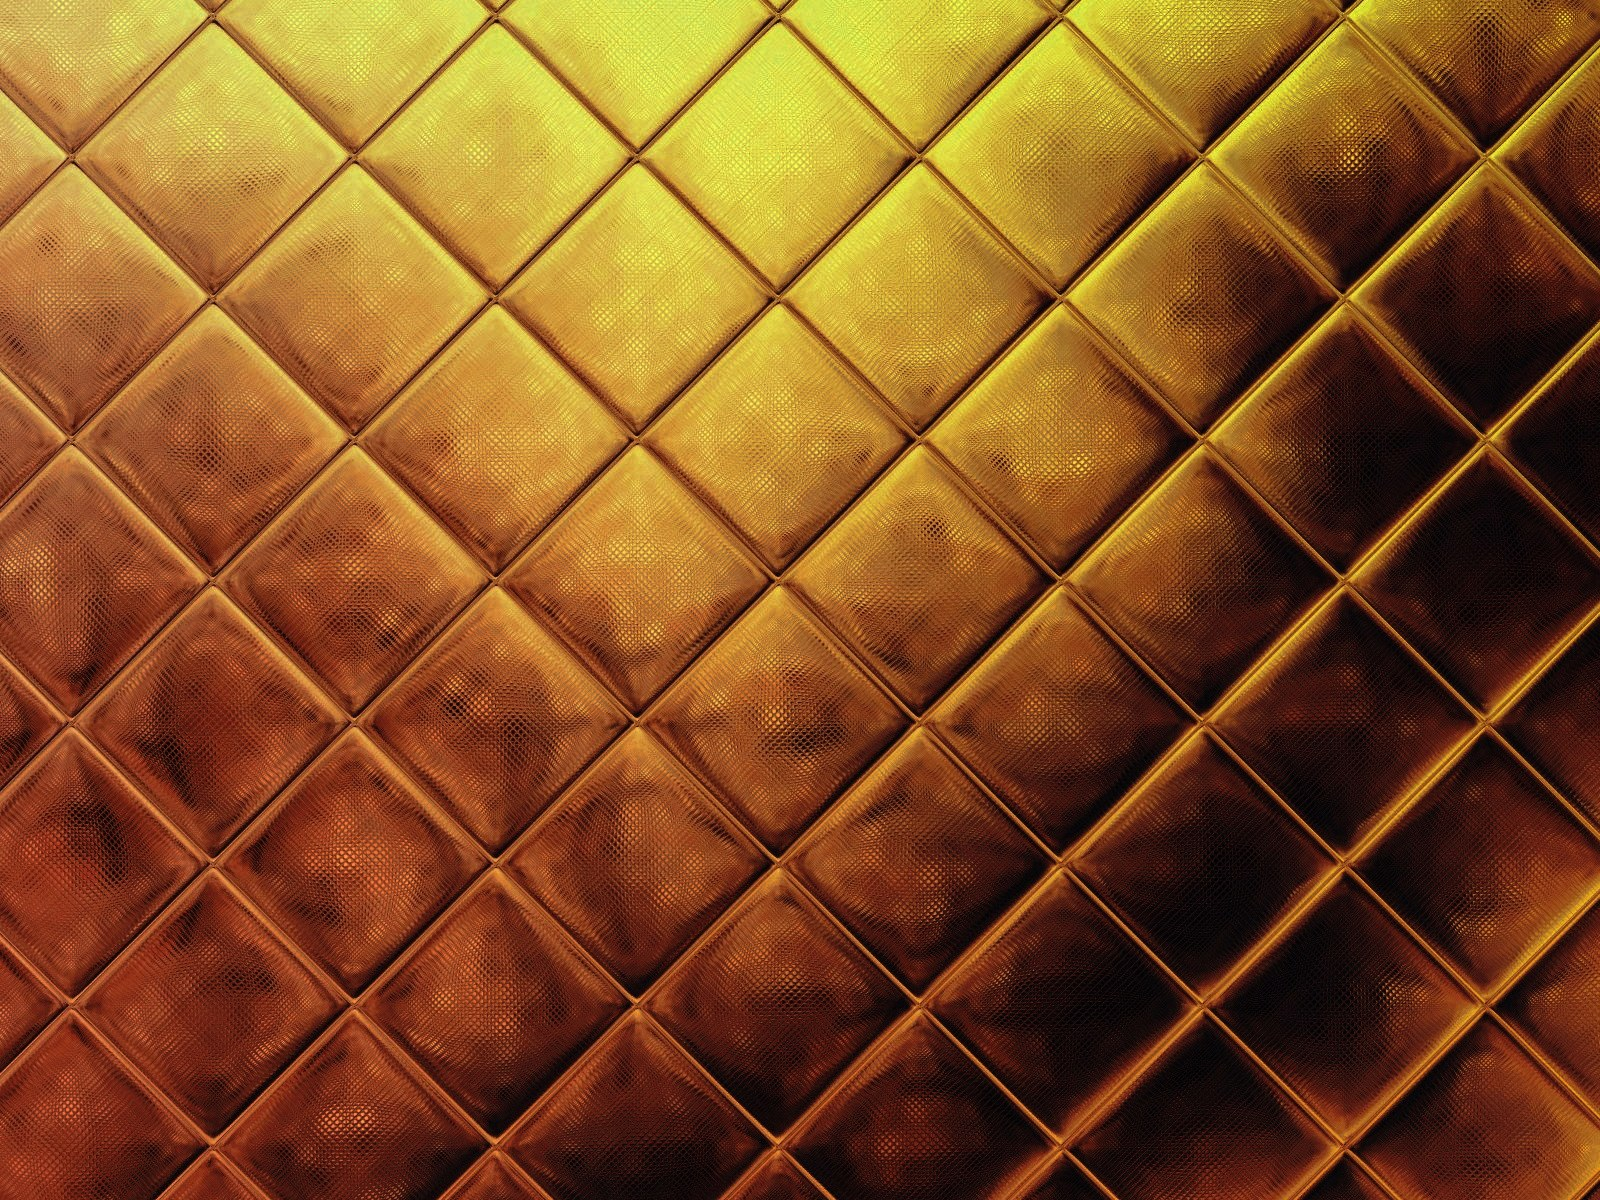 gold texture, texture gold, gold, golden background, background - gold ...